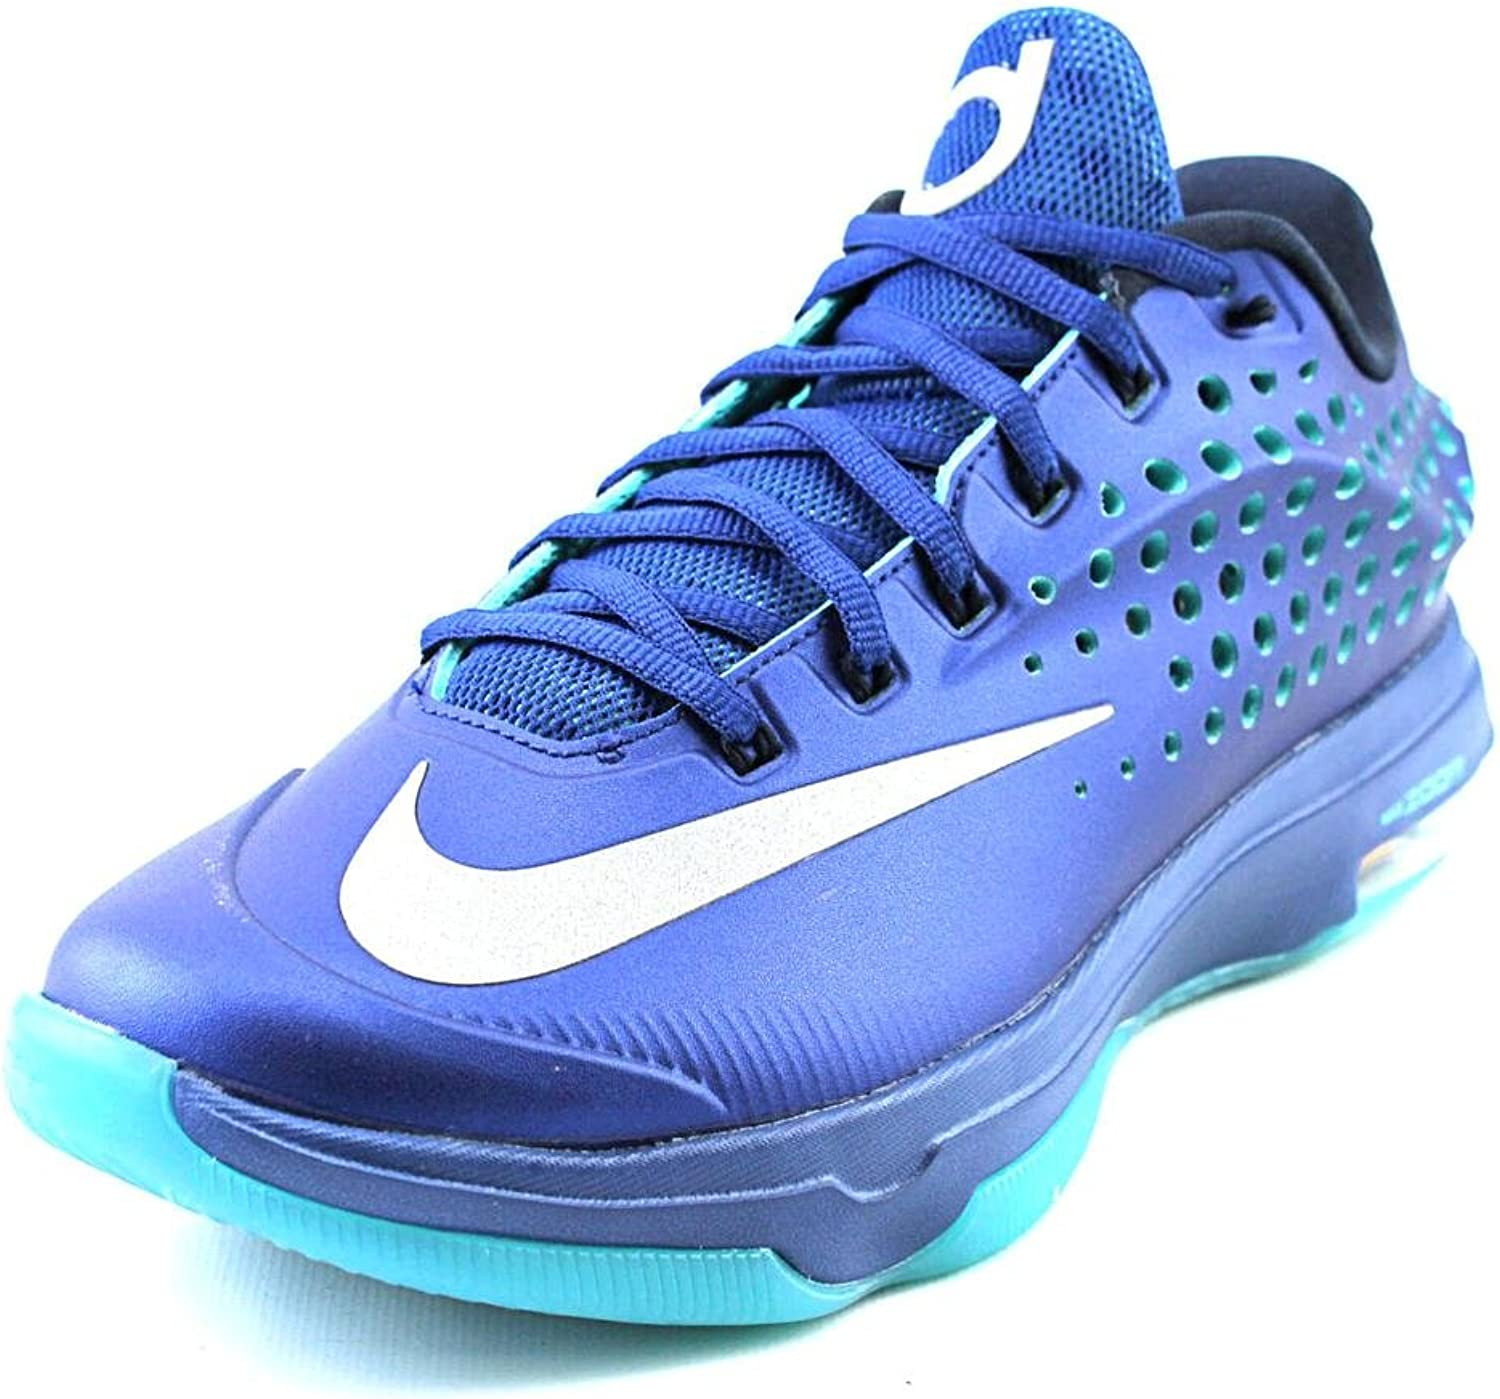 Nike KD VII Elite Mens Basketball shoes